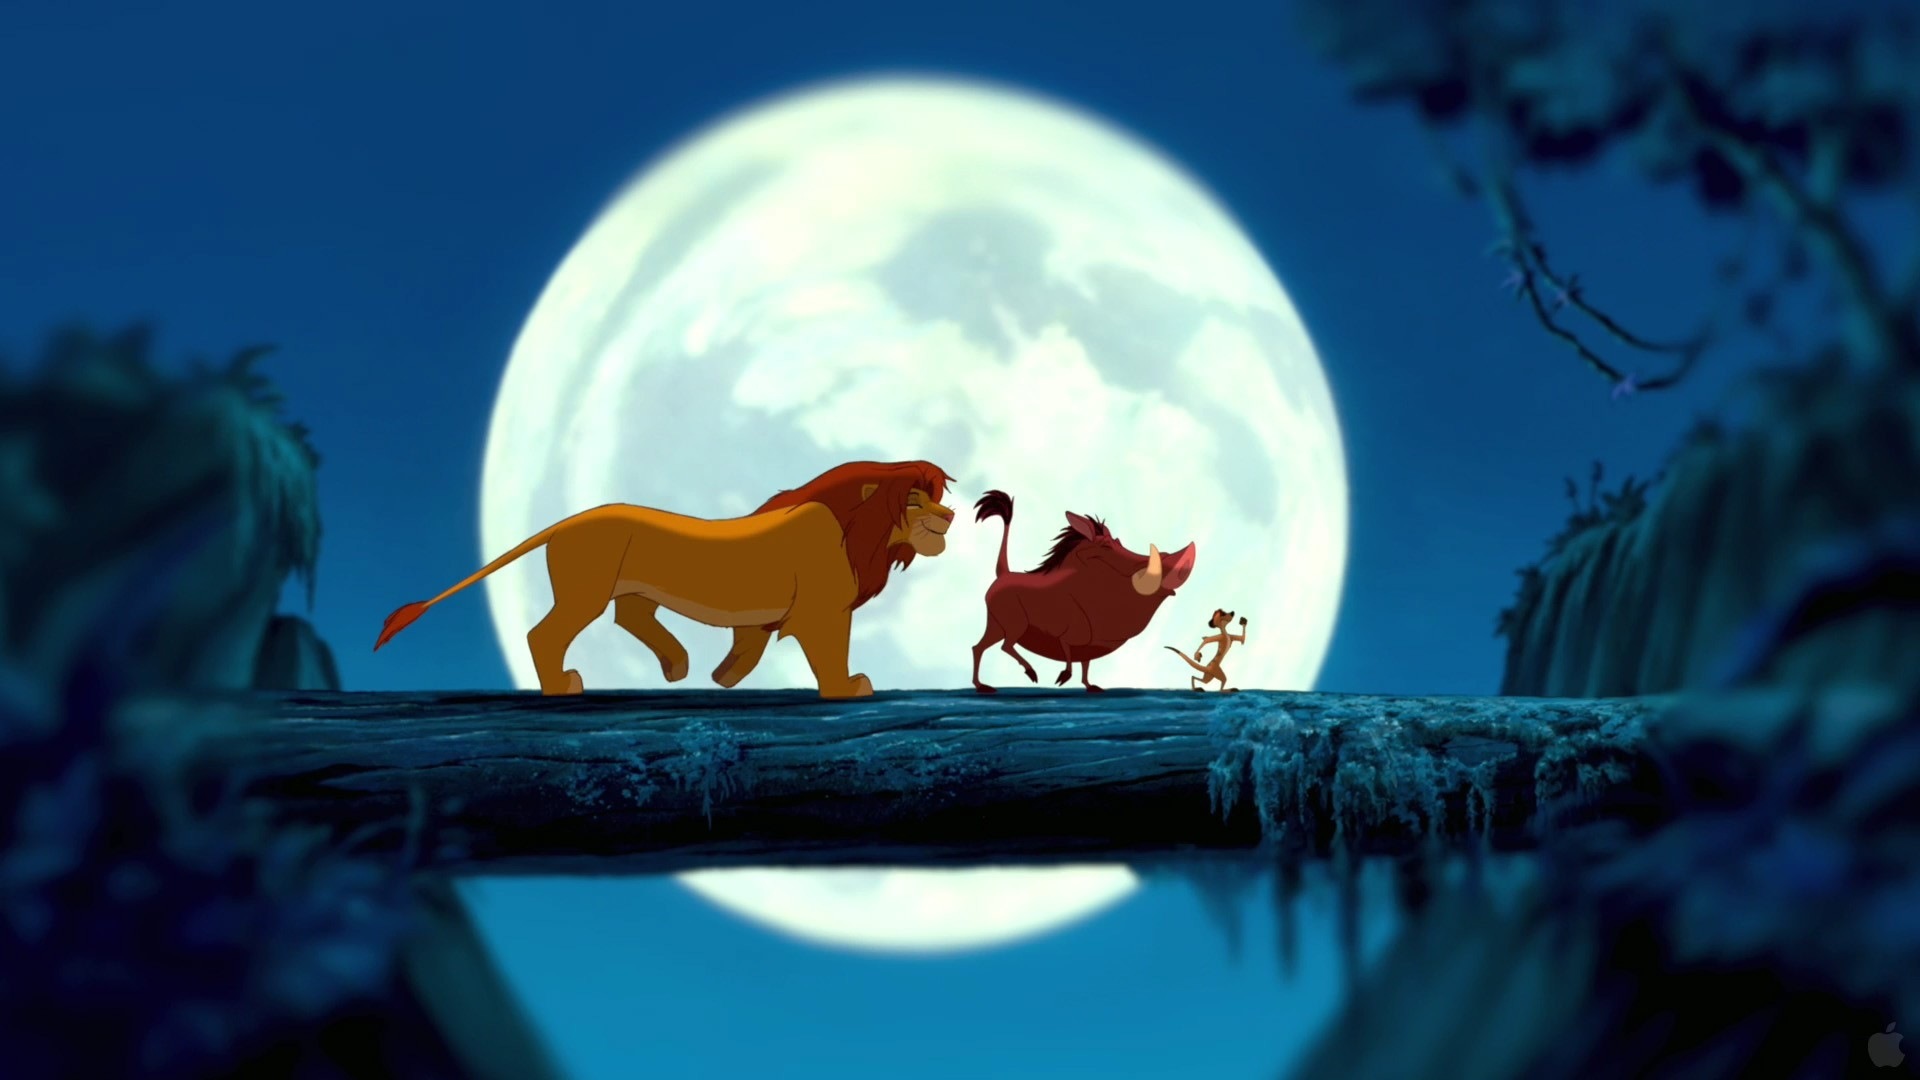 Hakuna Matata   Grown Up   The Lion King Wallpaper 1920x1080 14708 1920x1080